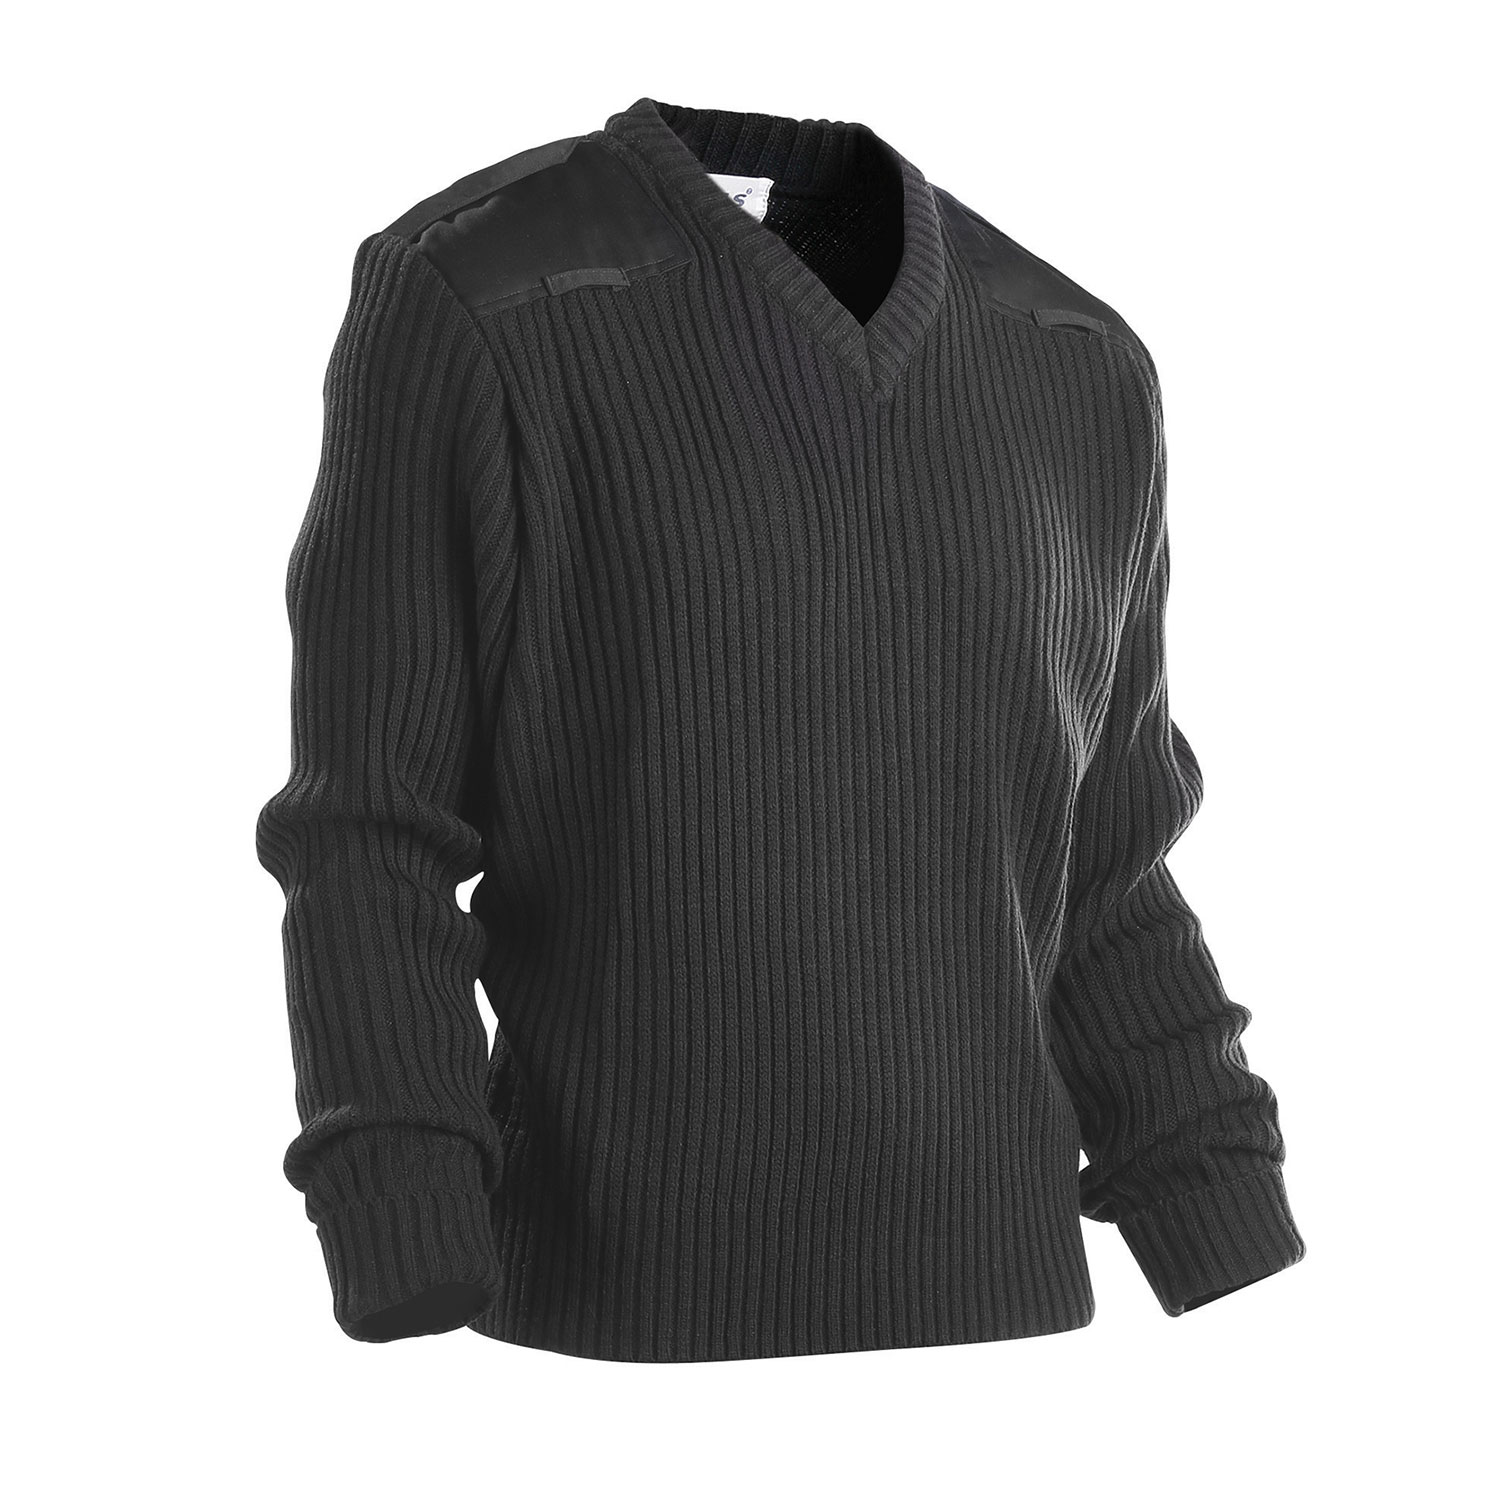 Galls Commando V Neck Acrylic Wool Sweater